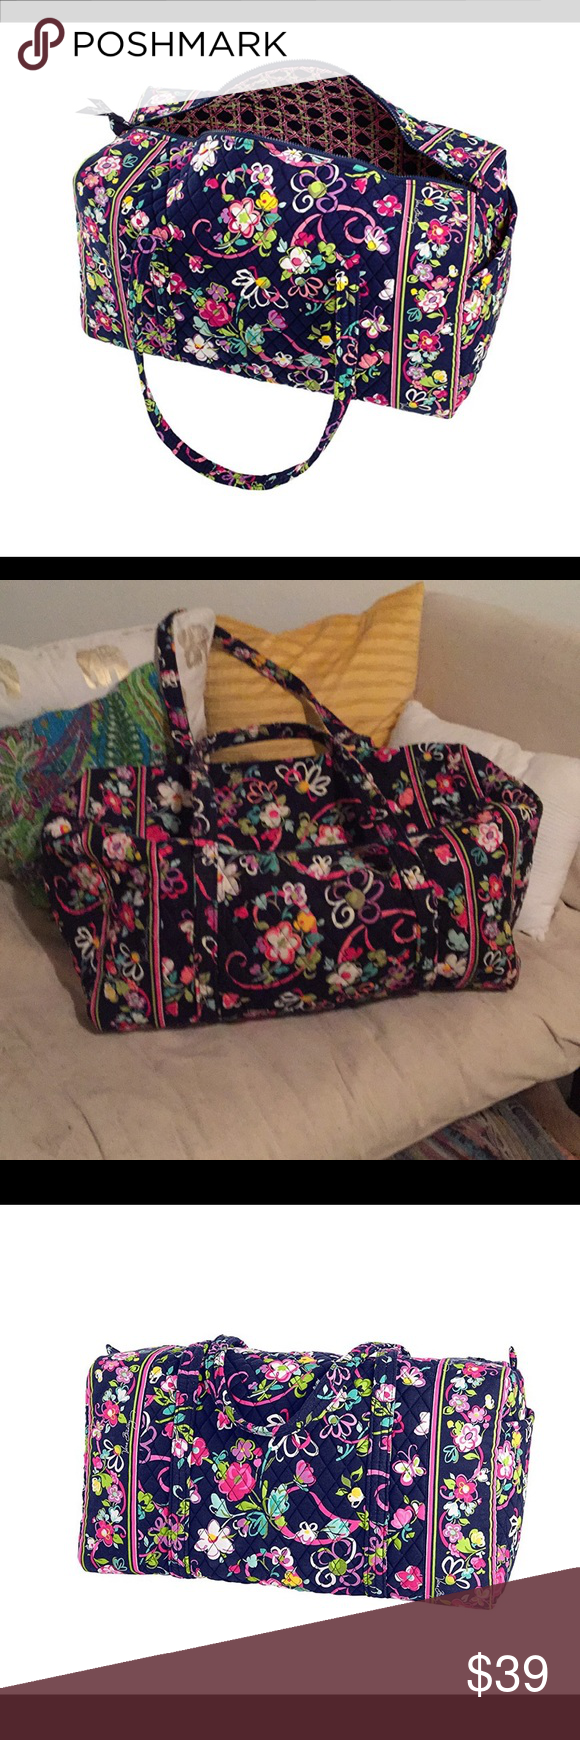 8dfeab8036f2 Vera Bradley Ribbons Large Duffel Bag Carry On Excellent bag- in like new  condition. 1 end pocket. Vera Bradley Bags Travel Bags